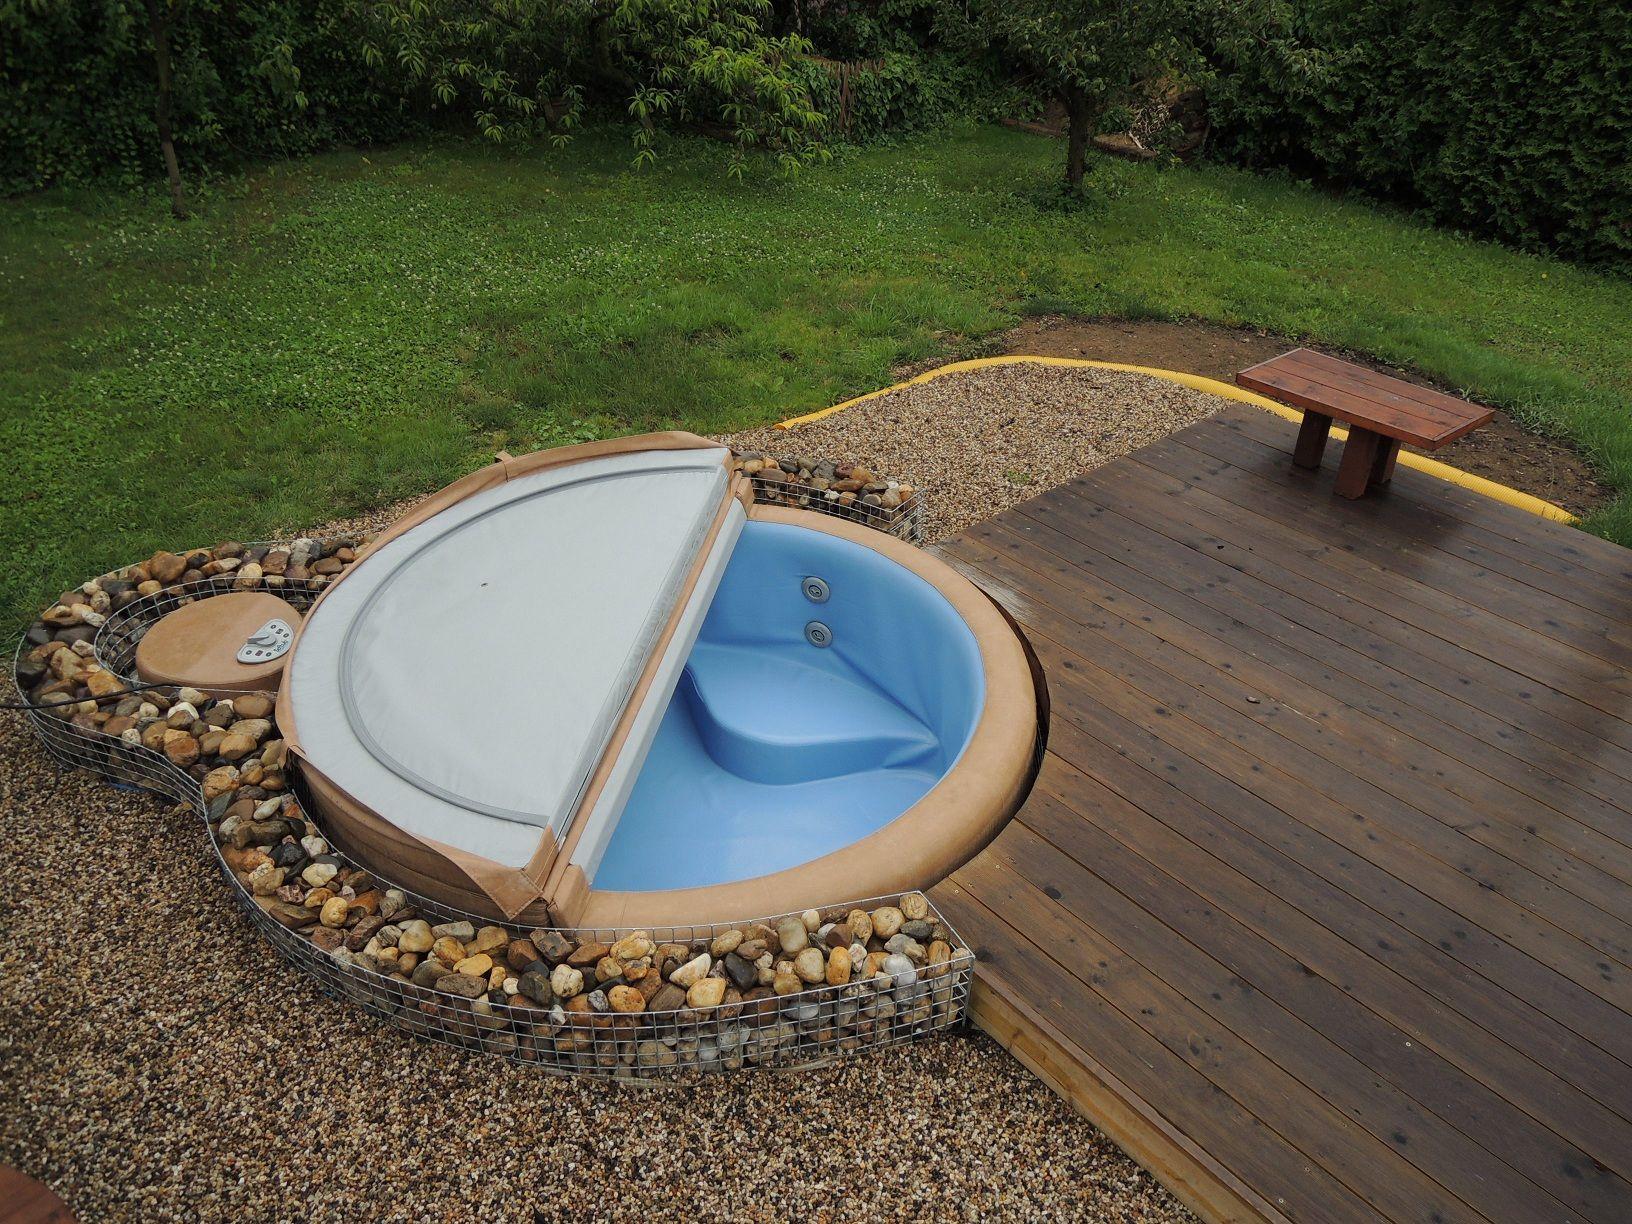 devon gumtree hot fountains ponds soft p paignton softub tub in